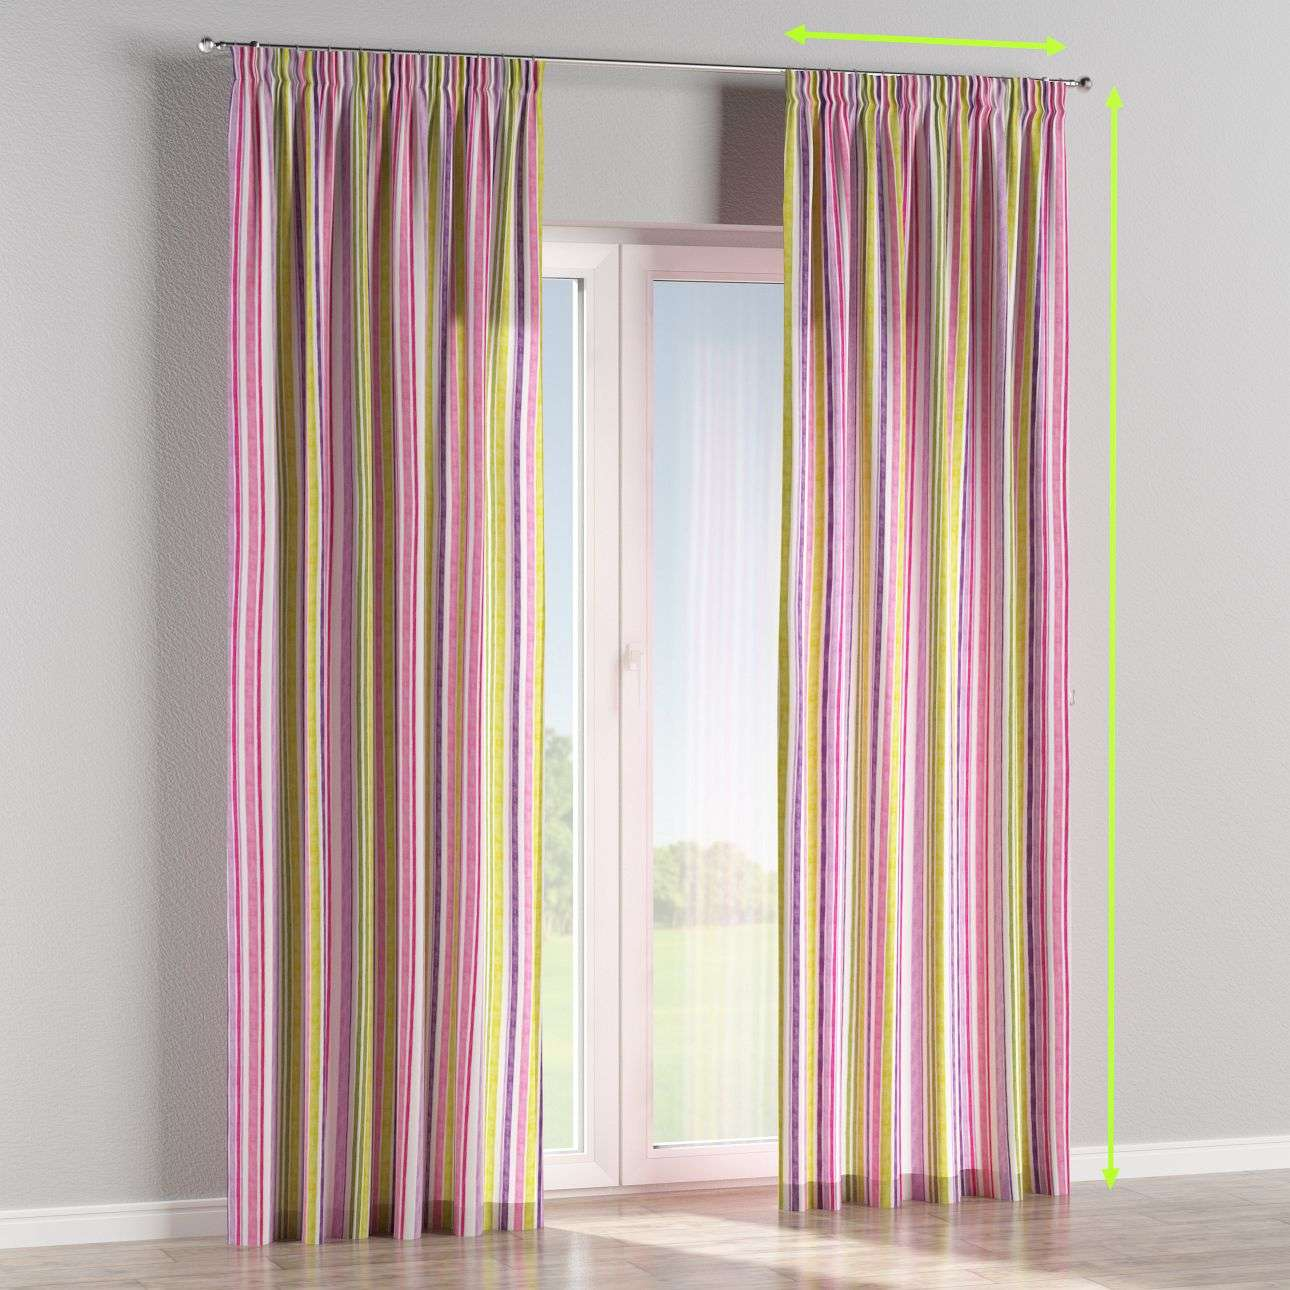 Pencil pleat lined curtains in collection Monet, fabric: 140-01